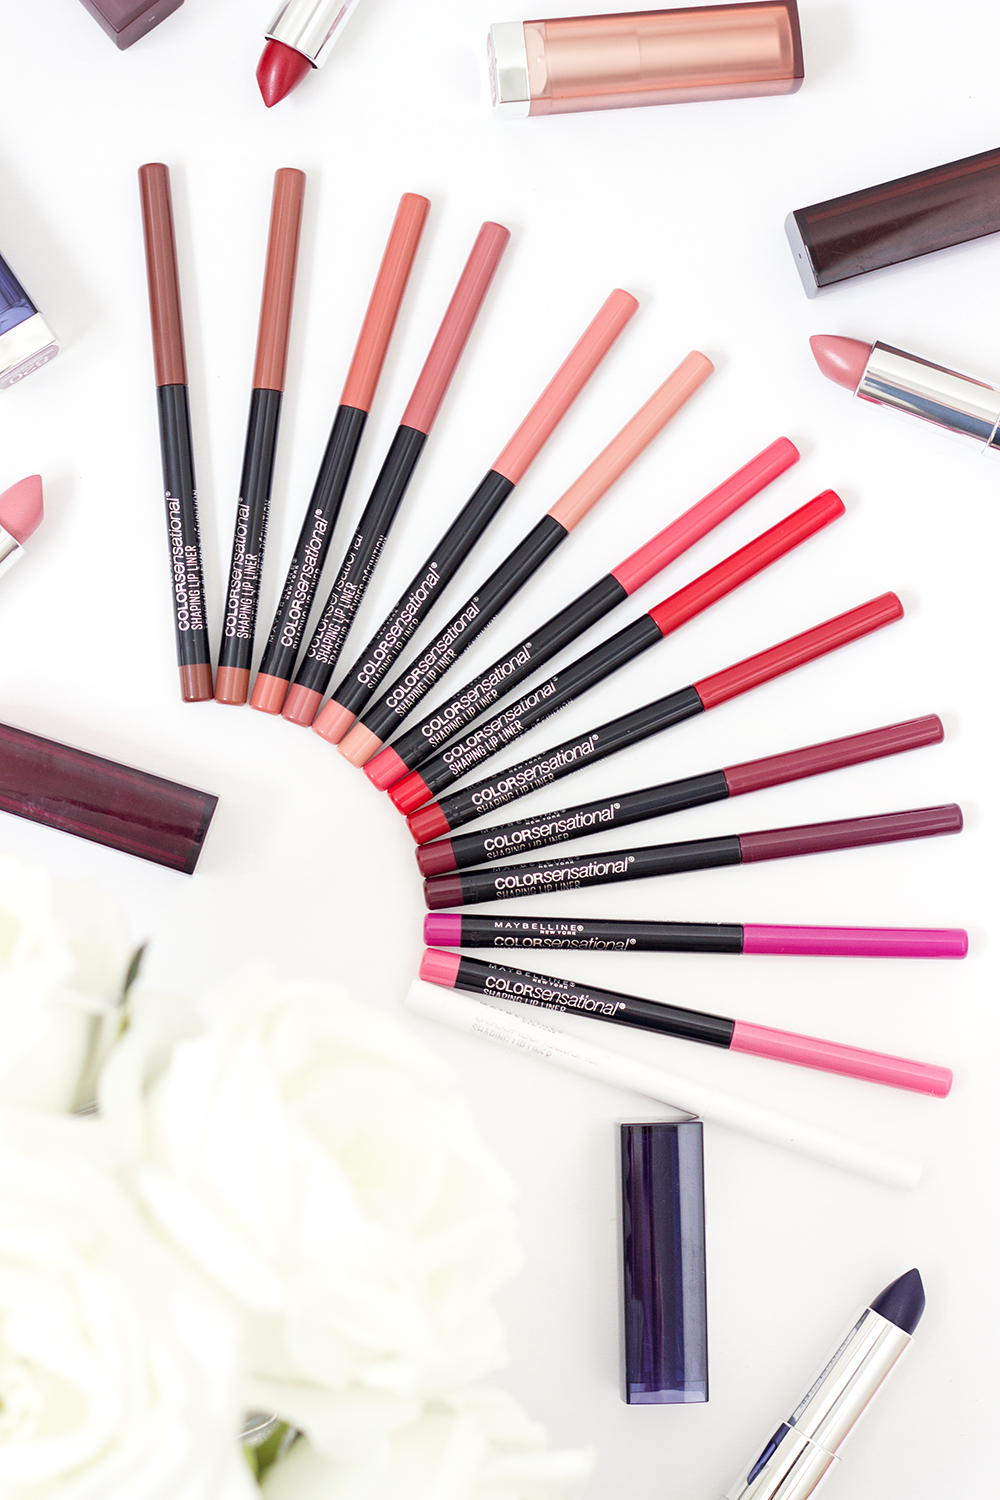 Maybelline Color Sensational Shaping Lip Liners